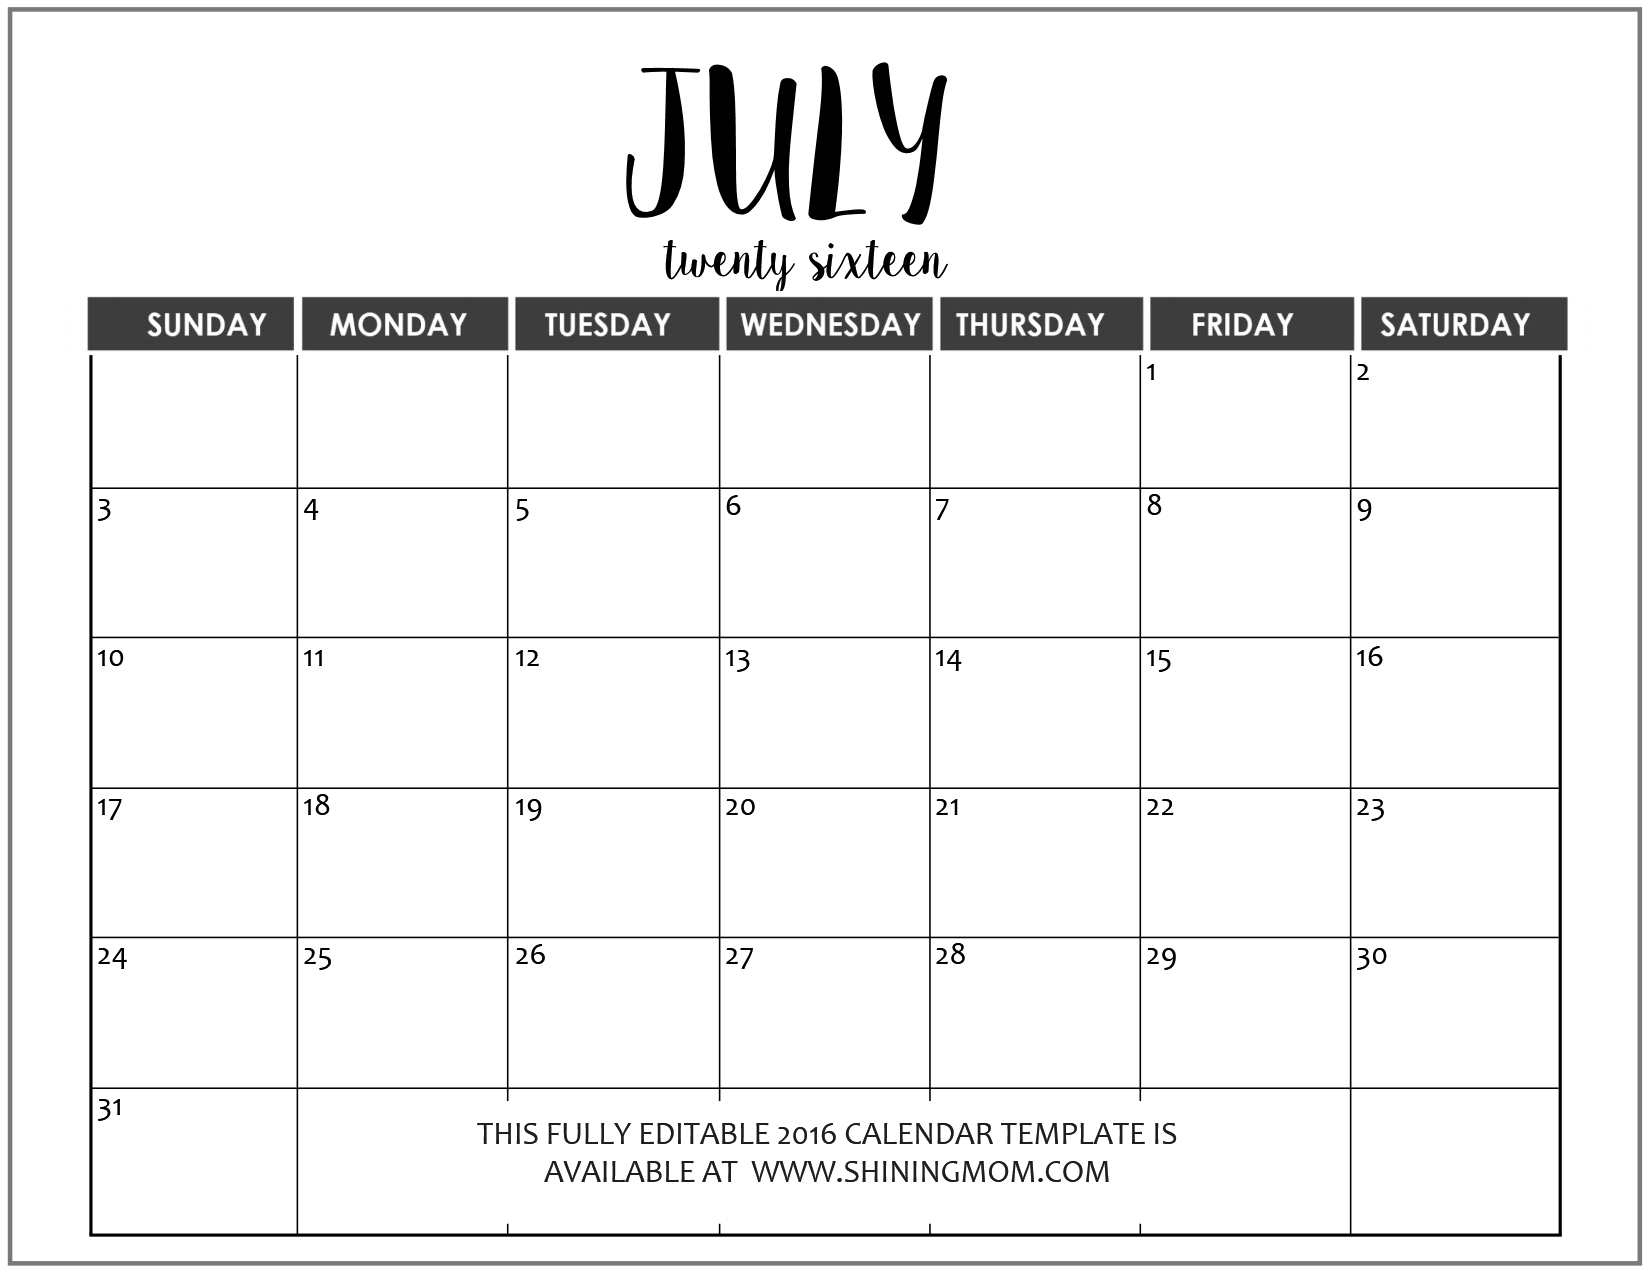 Calendar Templates July : Just in fully editable calendar templates ms word